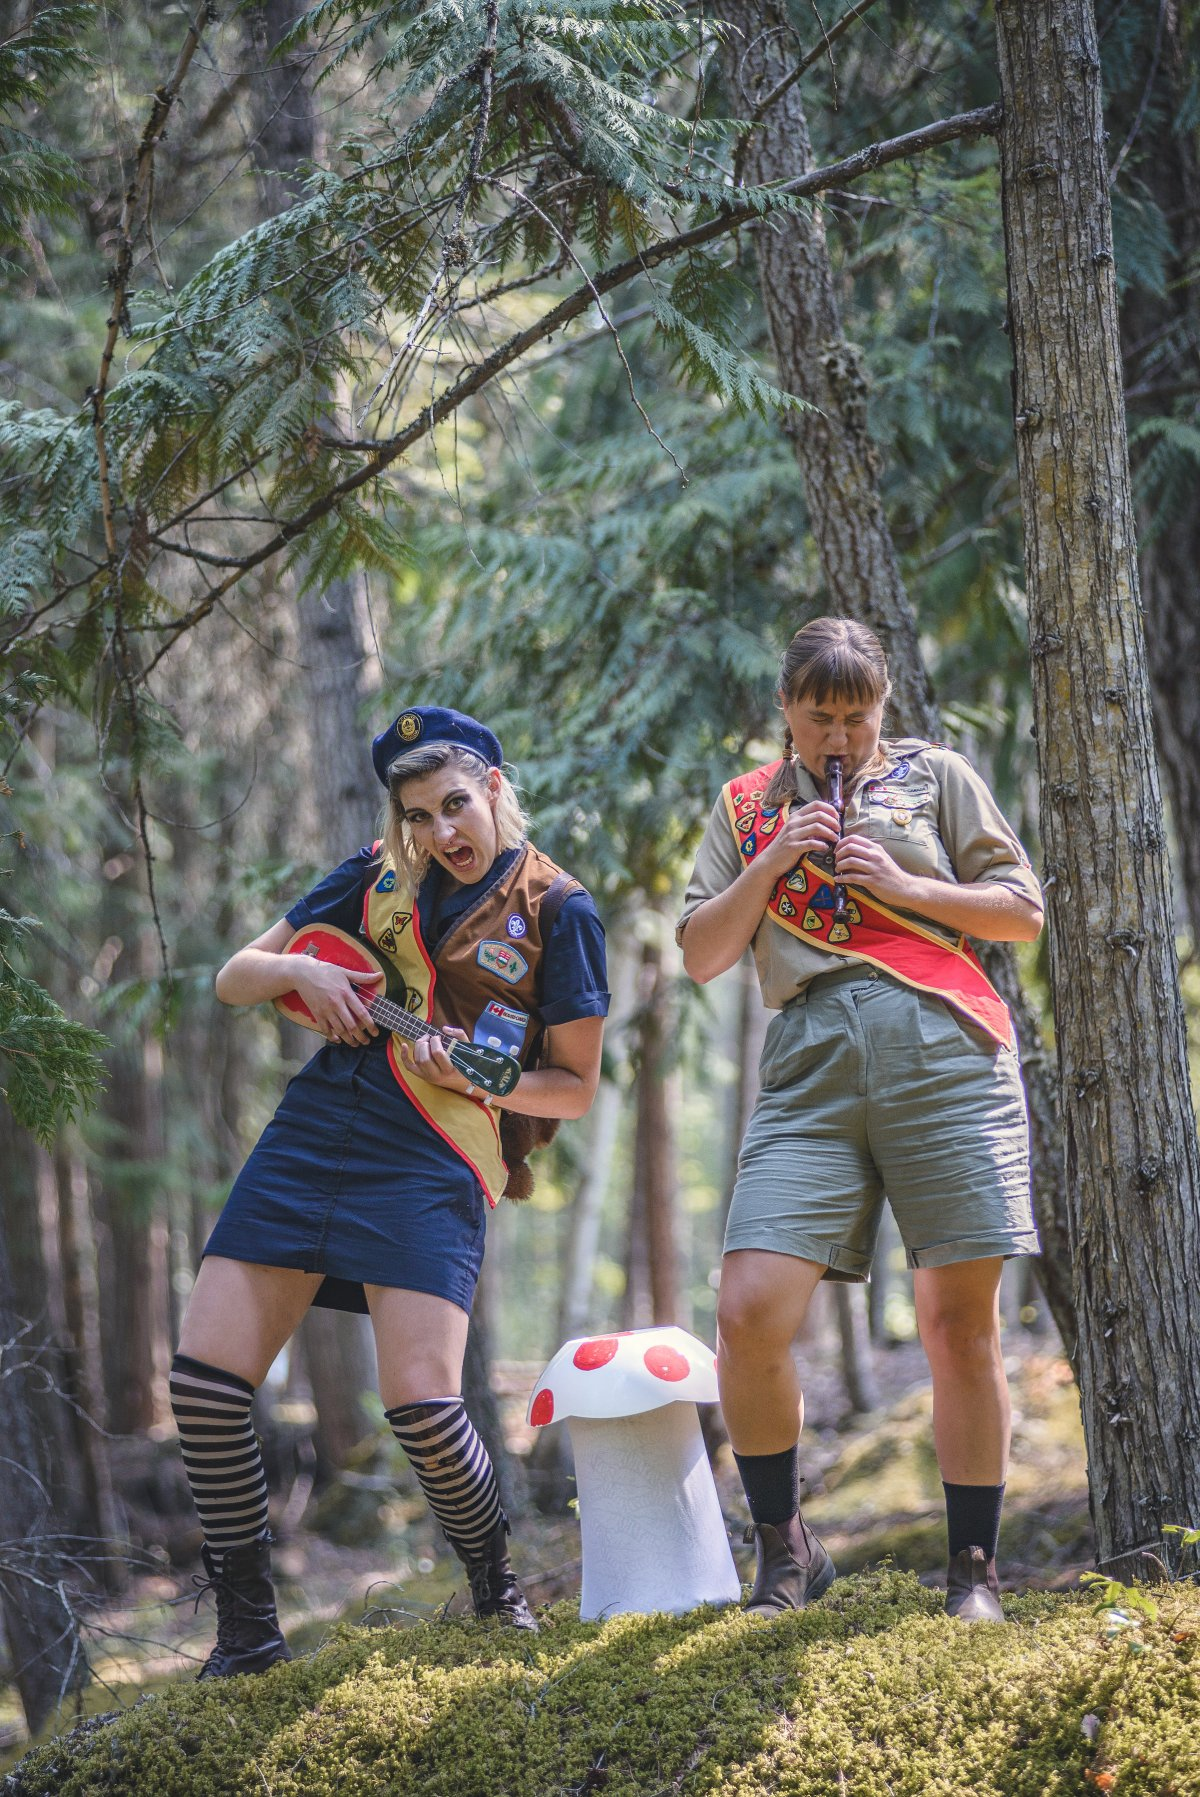 Toronto Fringe: Summer camp like you've never seen before in the wacky fun, sex-positive, feminist Pack Animals